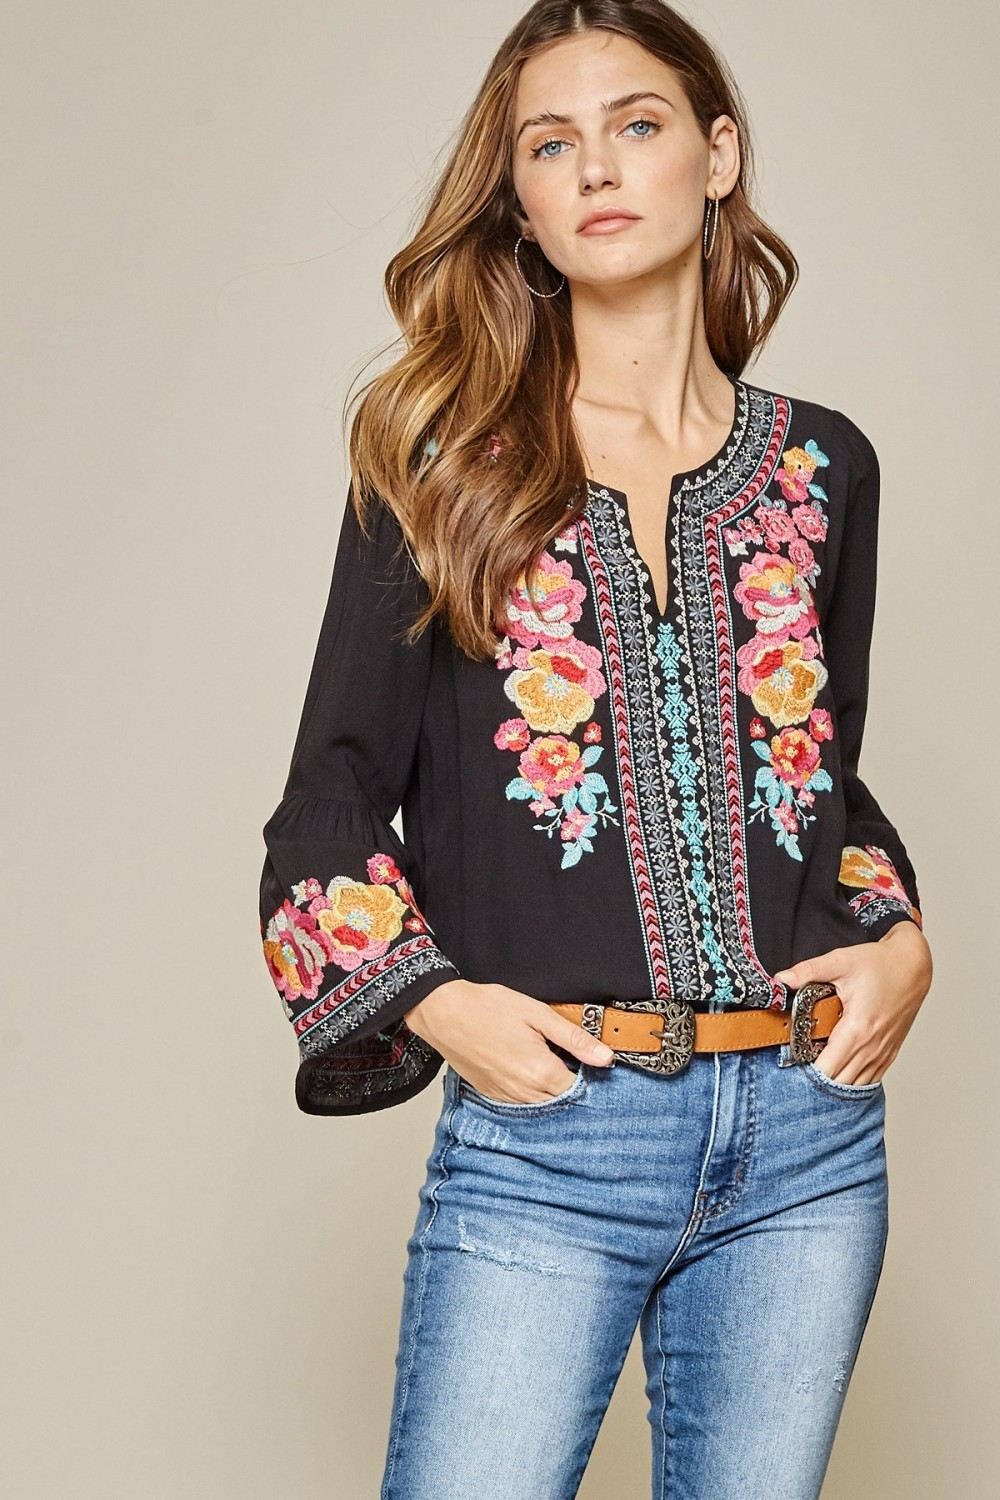 Savanna Jane Black Beauty Floral Embroidered Tunic Top